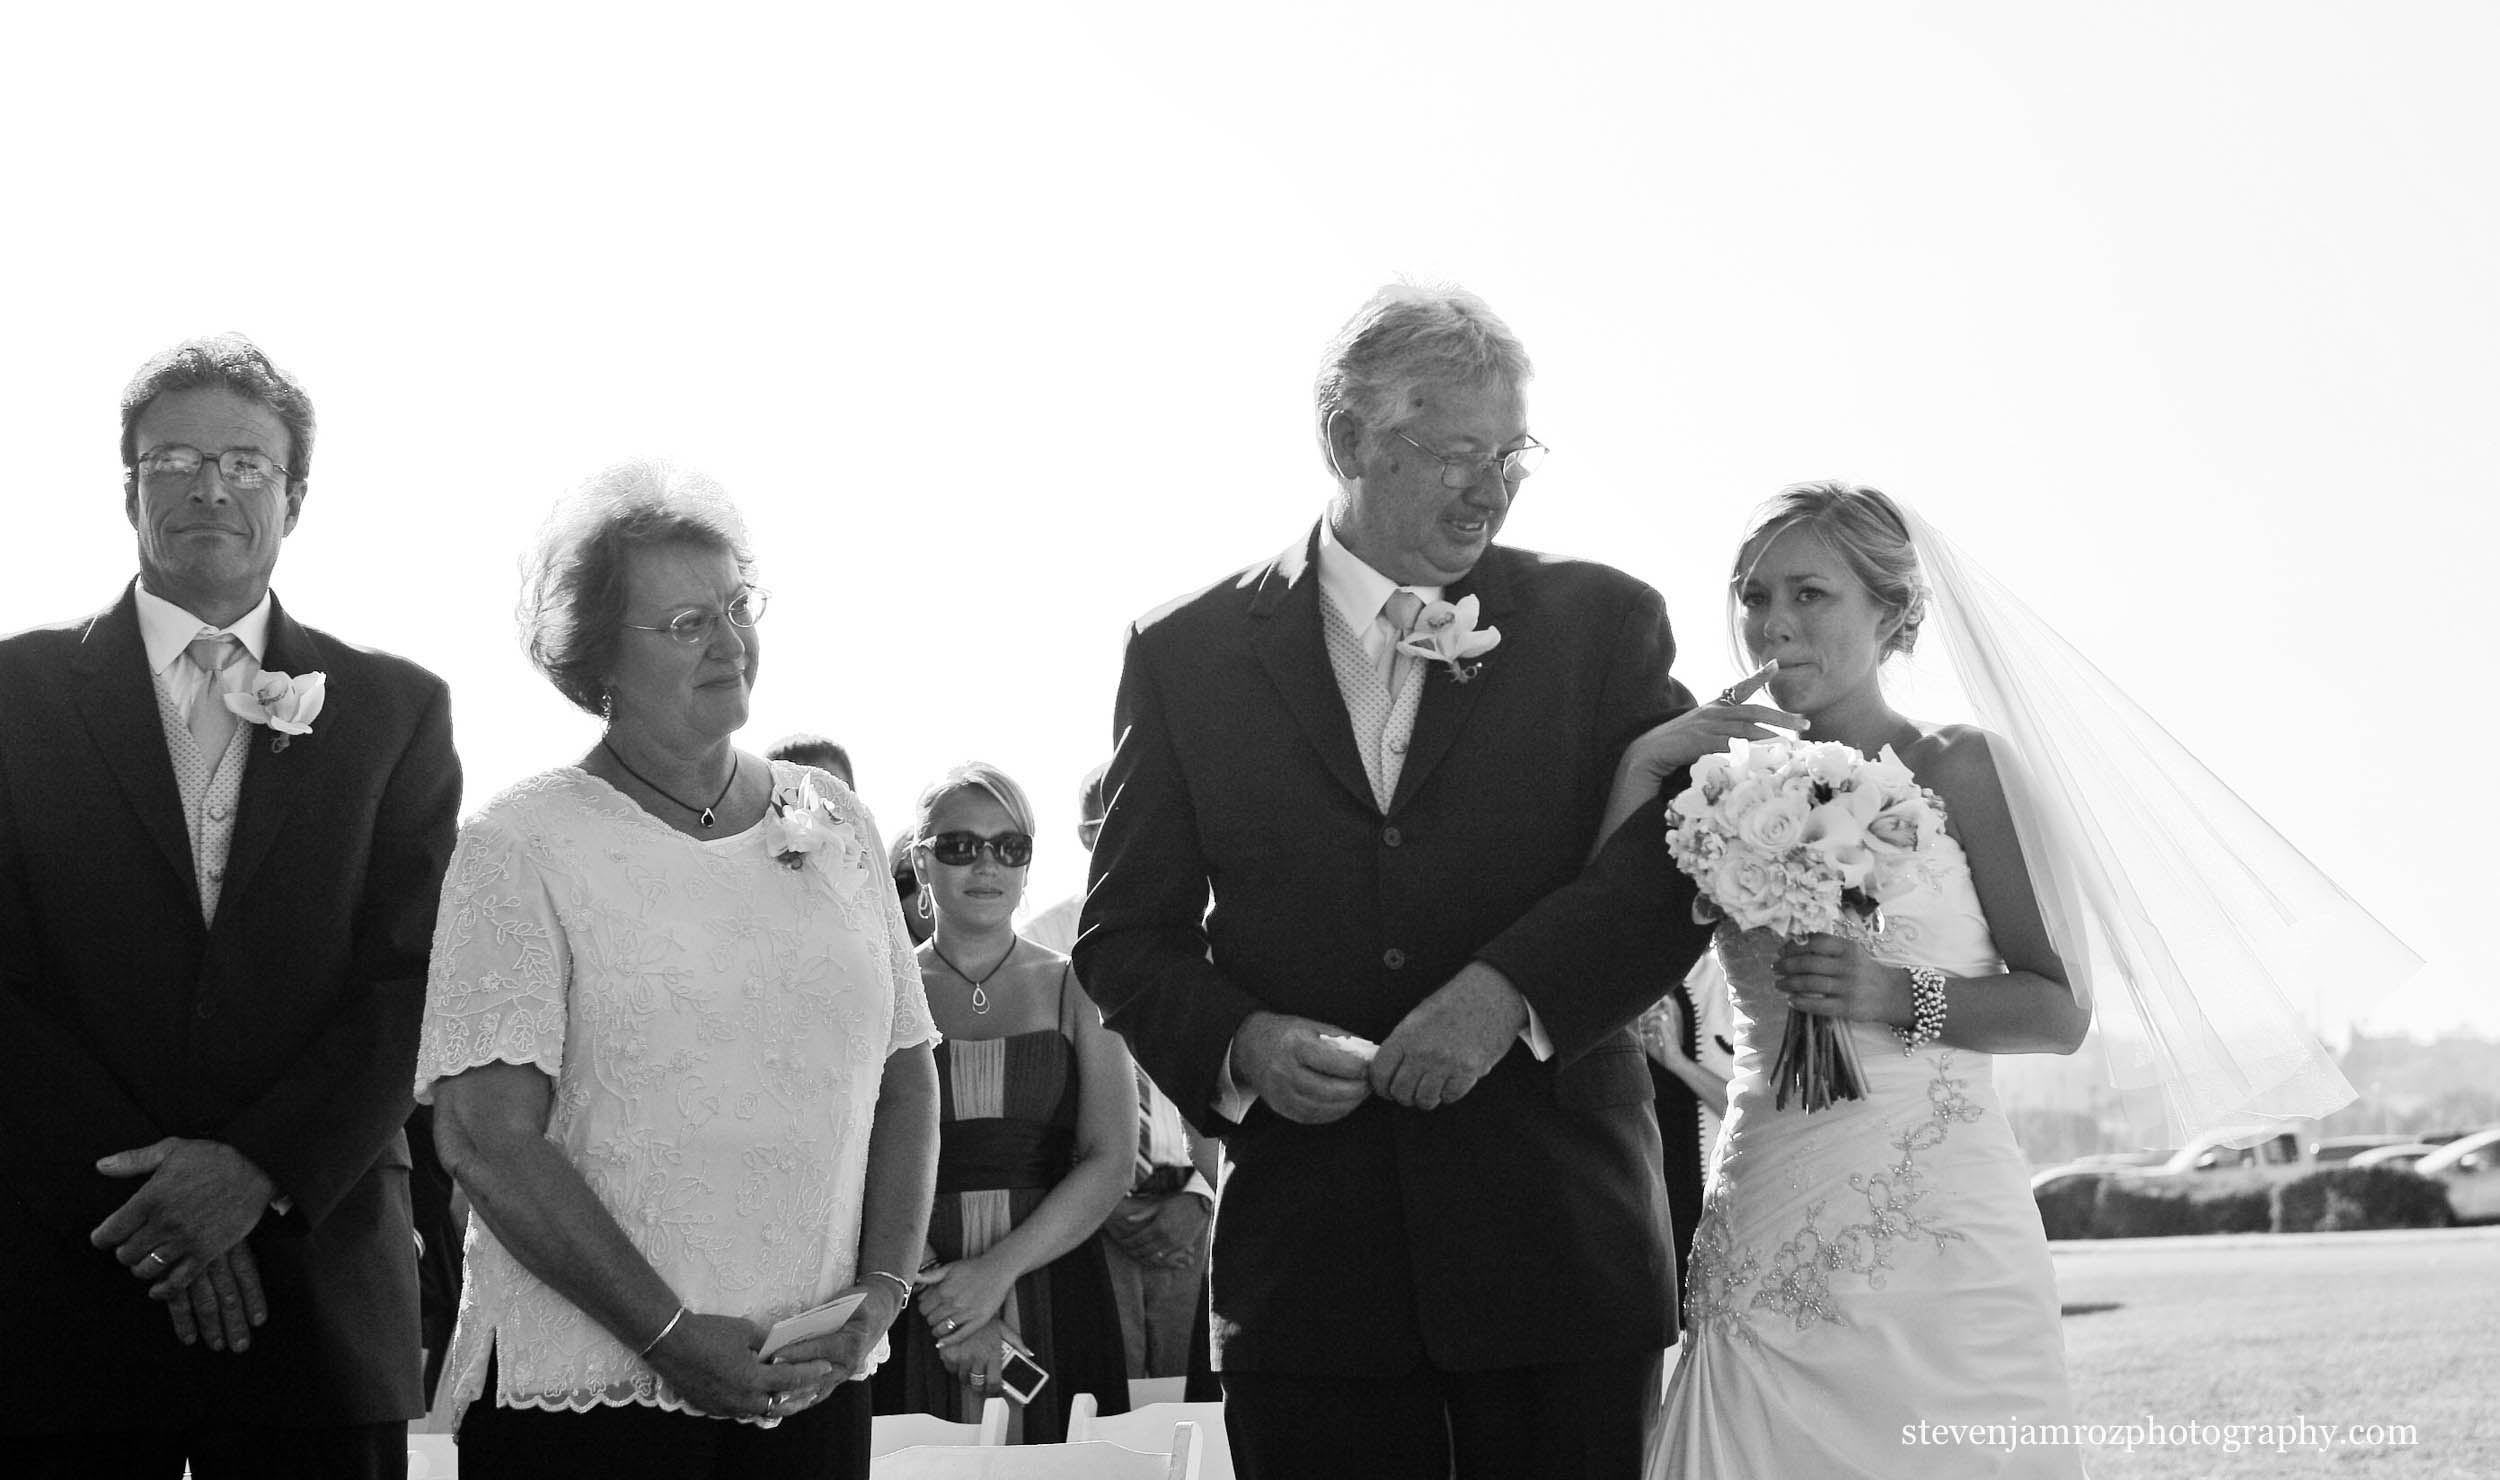 crying-bride-walking-down-aisle-raleigh-nc-wedding-steven-jamroz-photography-0472.jpg